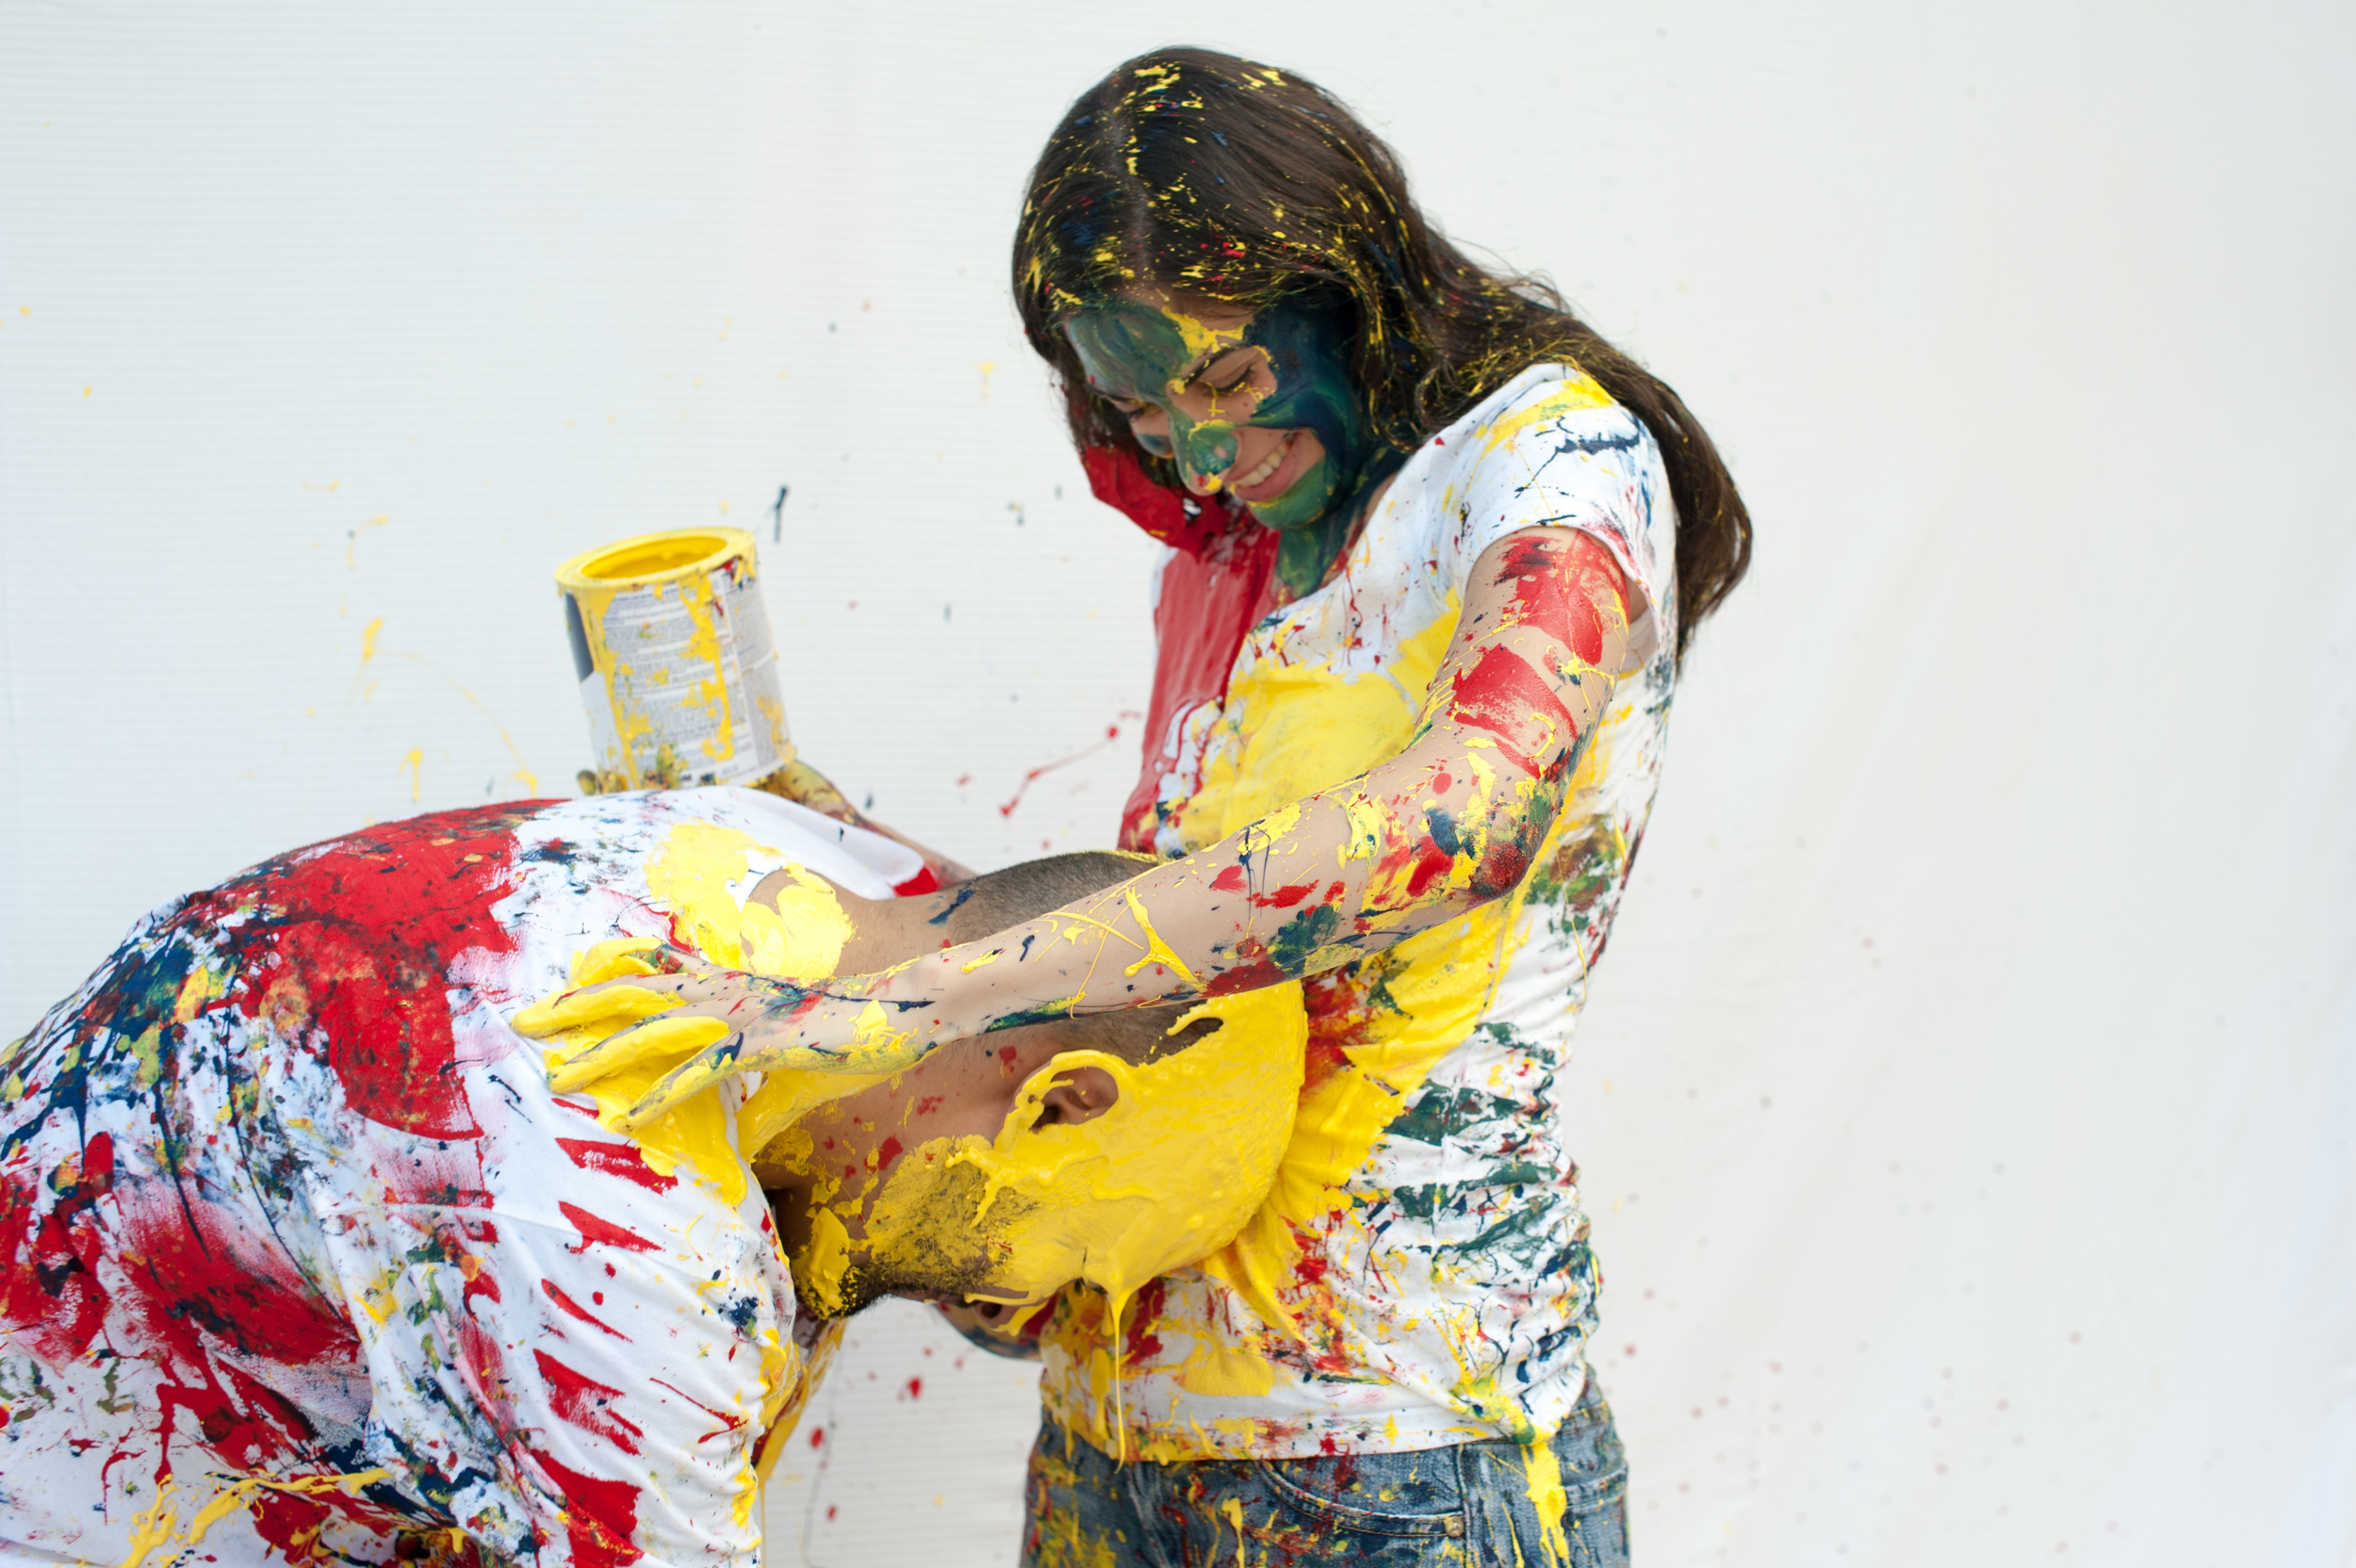 Paint War Engagement Session by Mantas Kubilinskas-23.jpg